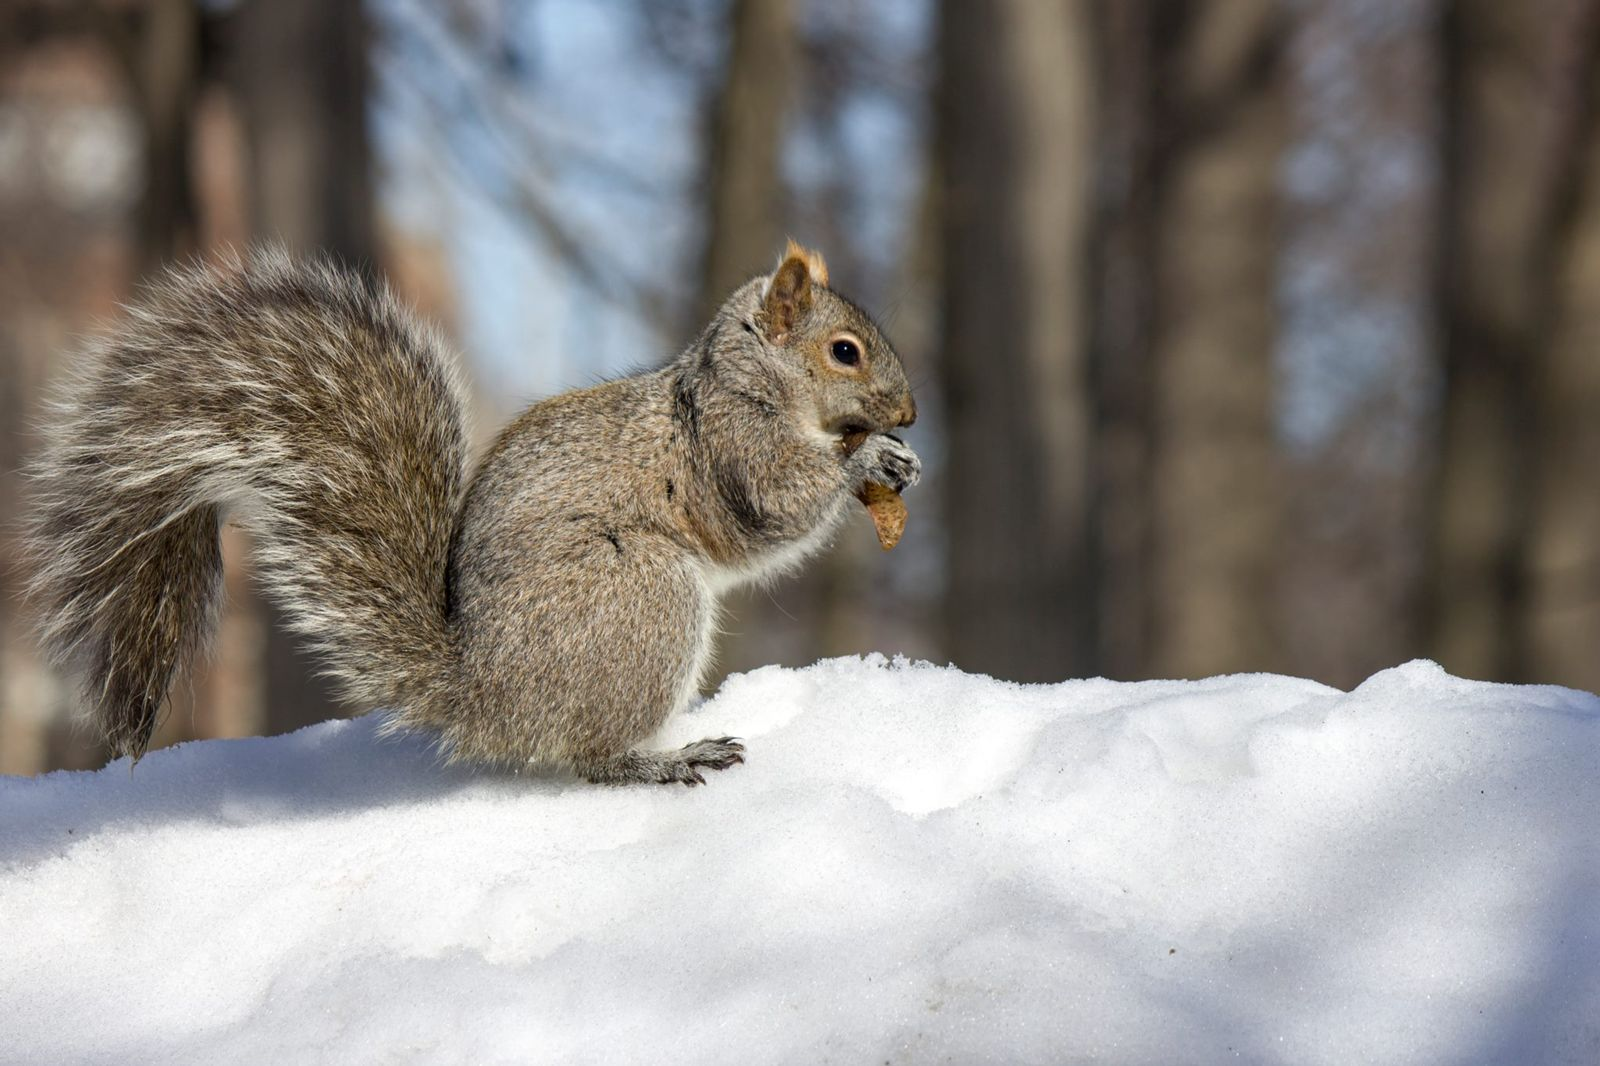 Squirrel eating a nut on a snowbank